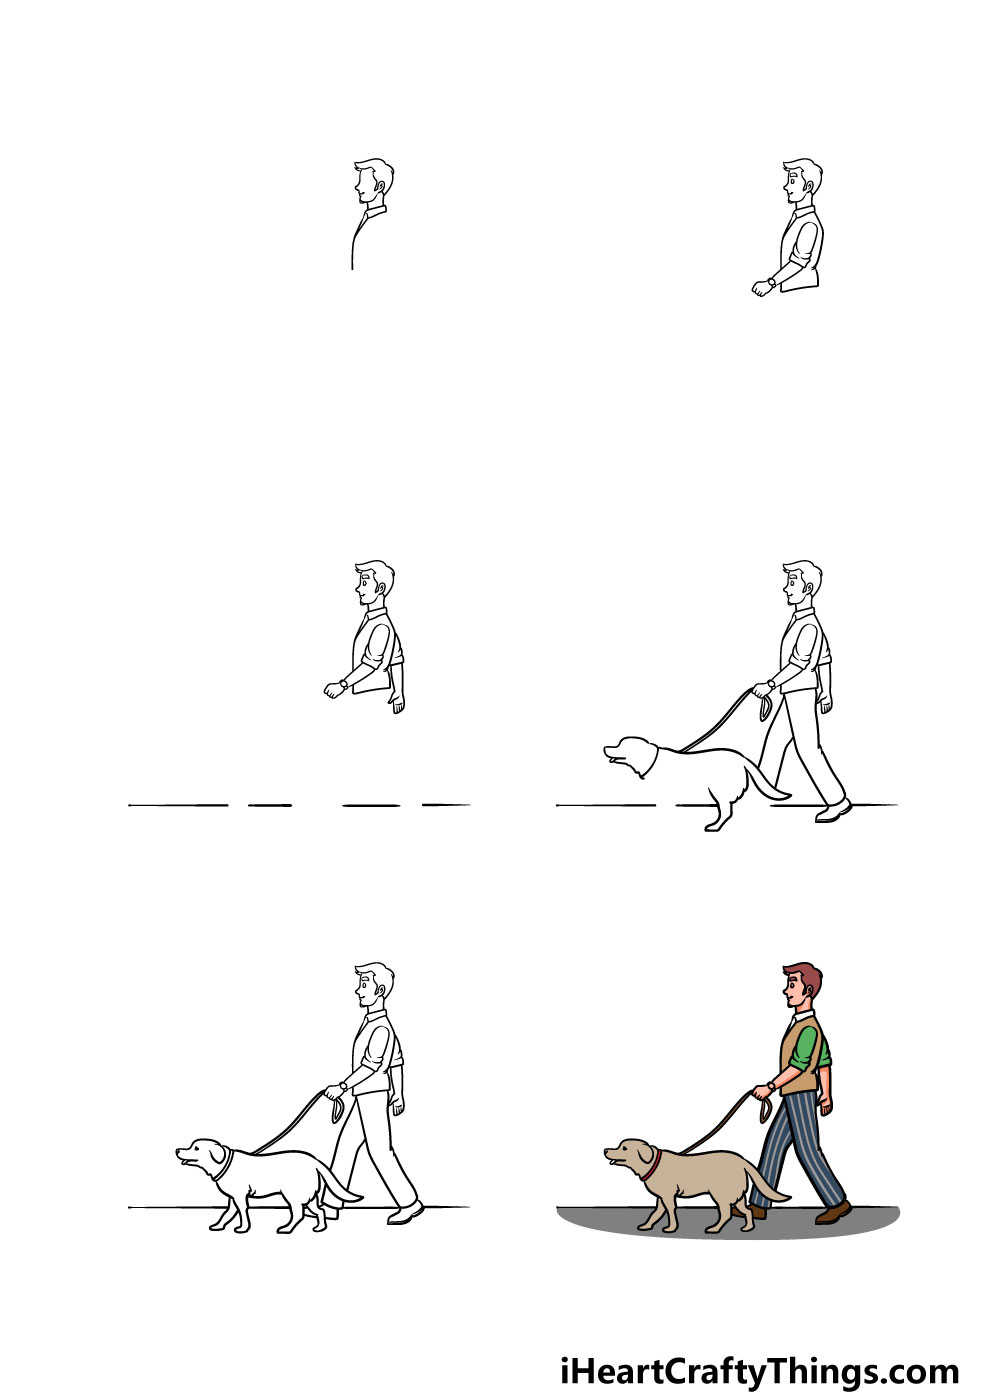 how to draw a man with a dog in 6 steps